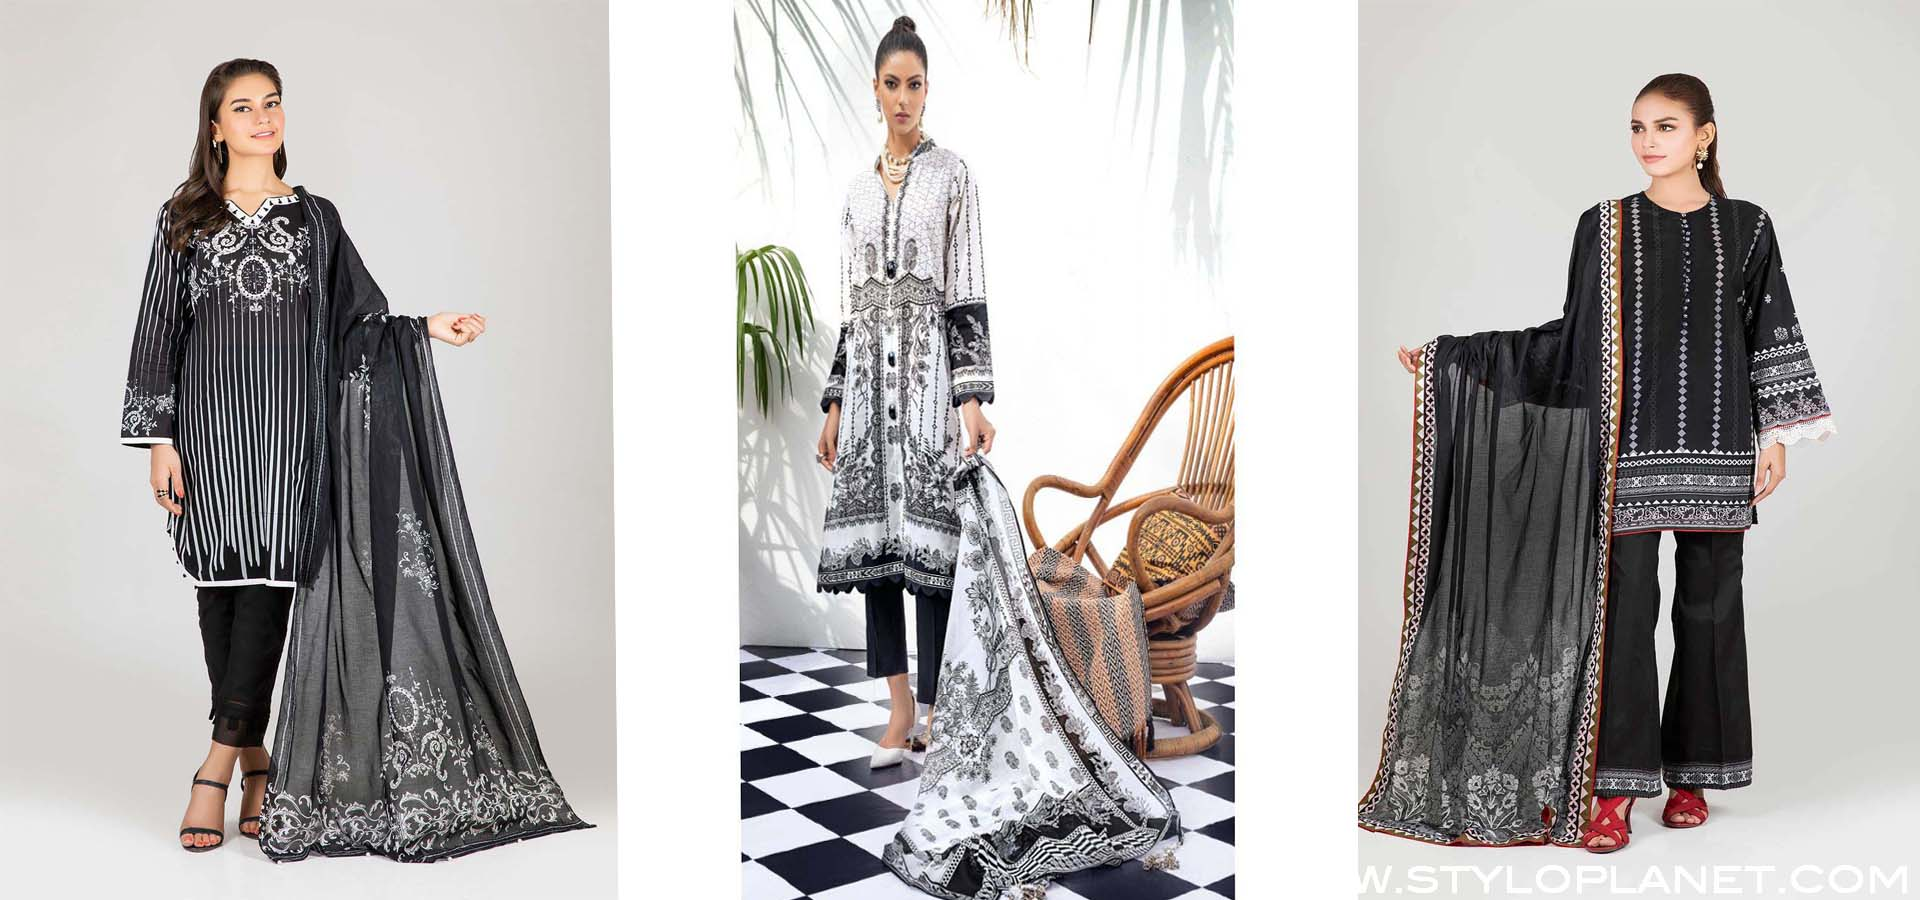 Latest Black and White Lawn Colelction by Pakistani Brands